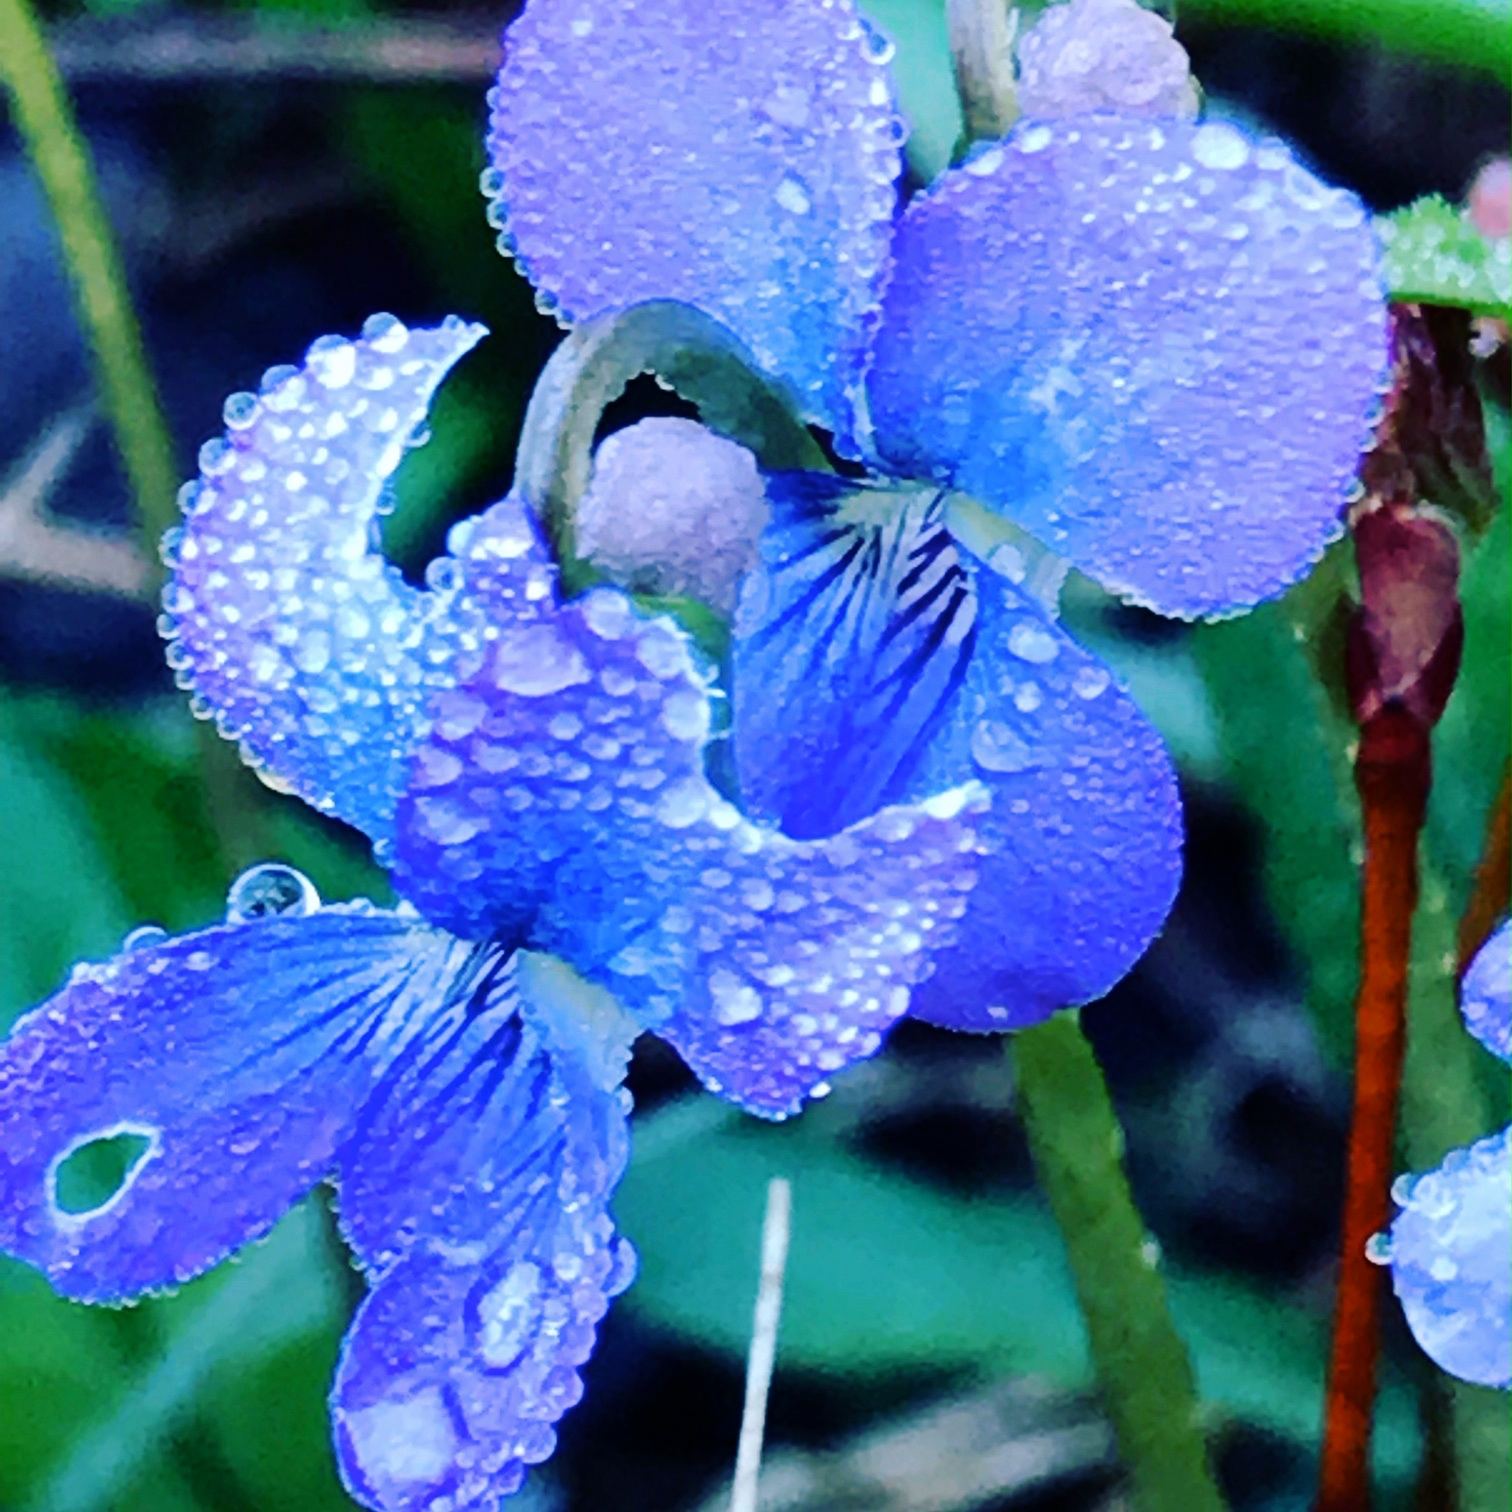 Violets by the swamp after rain